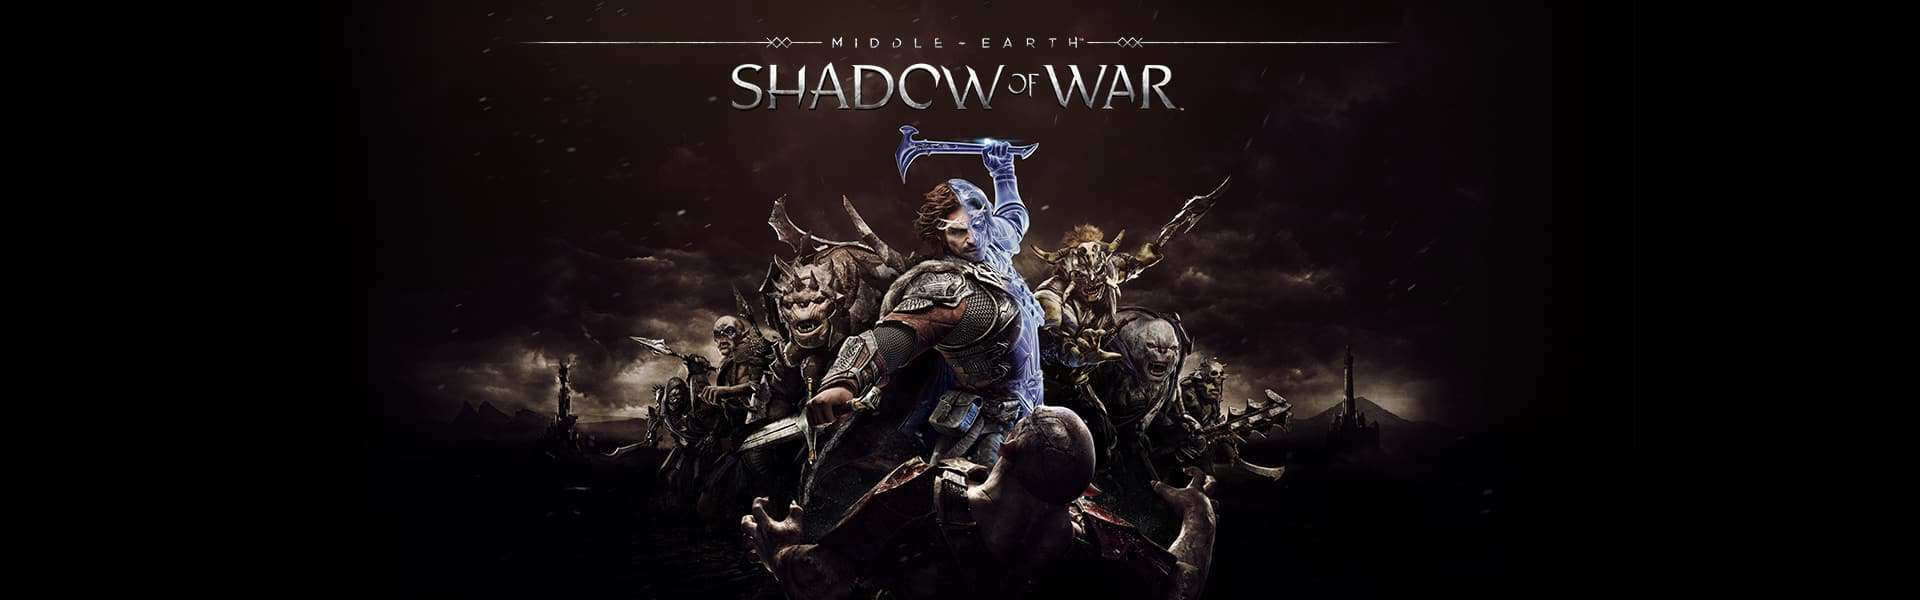 Best Settings For Middle-Earth: Shadow Of War – Optimize FPS, Better Performance